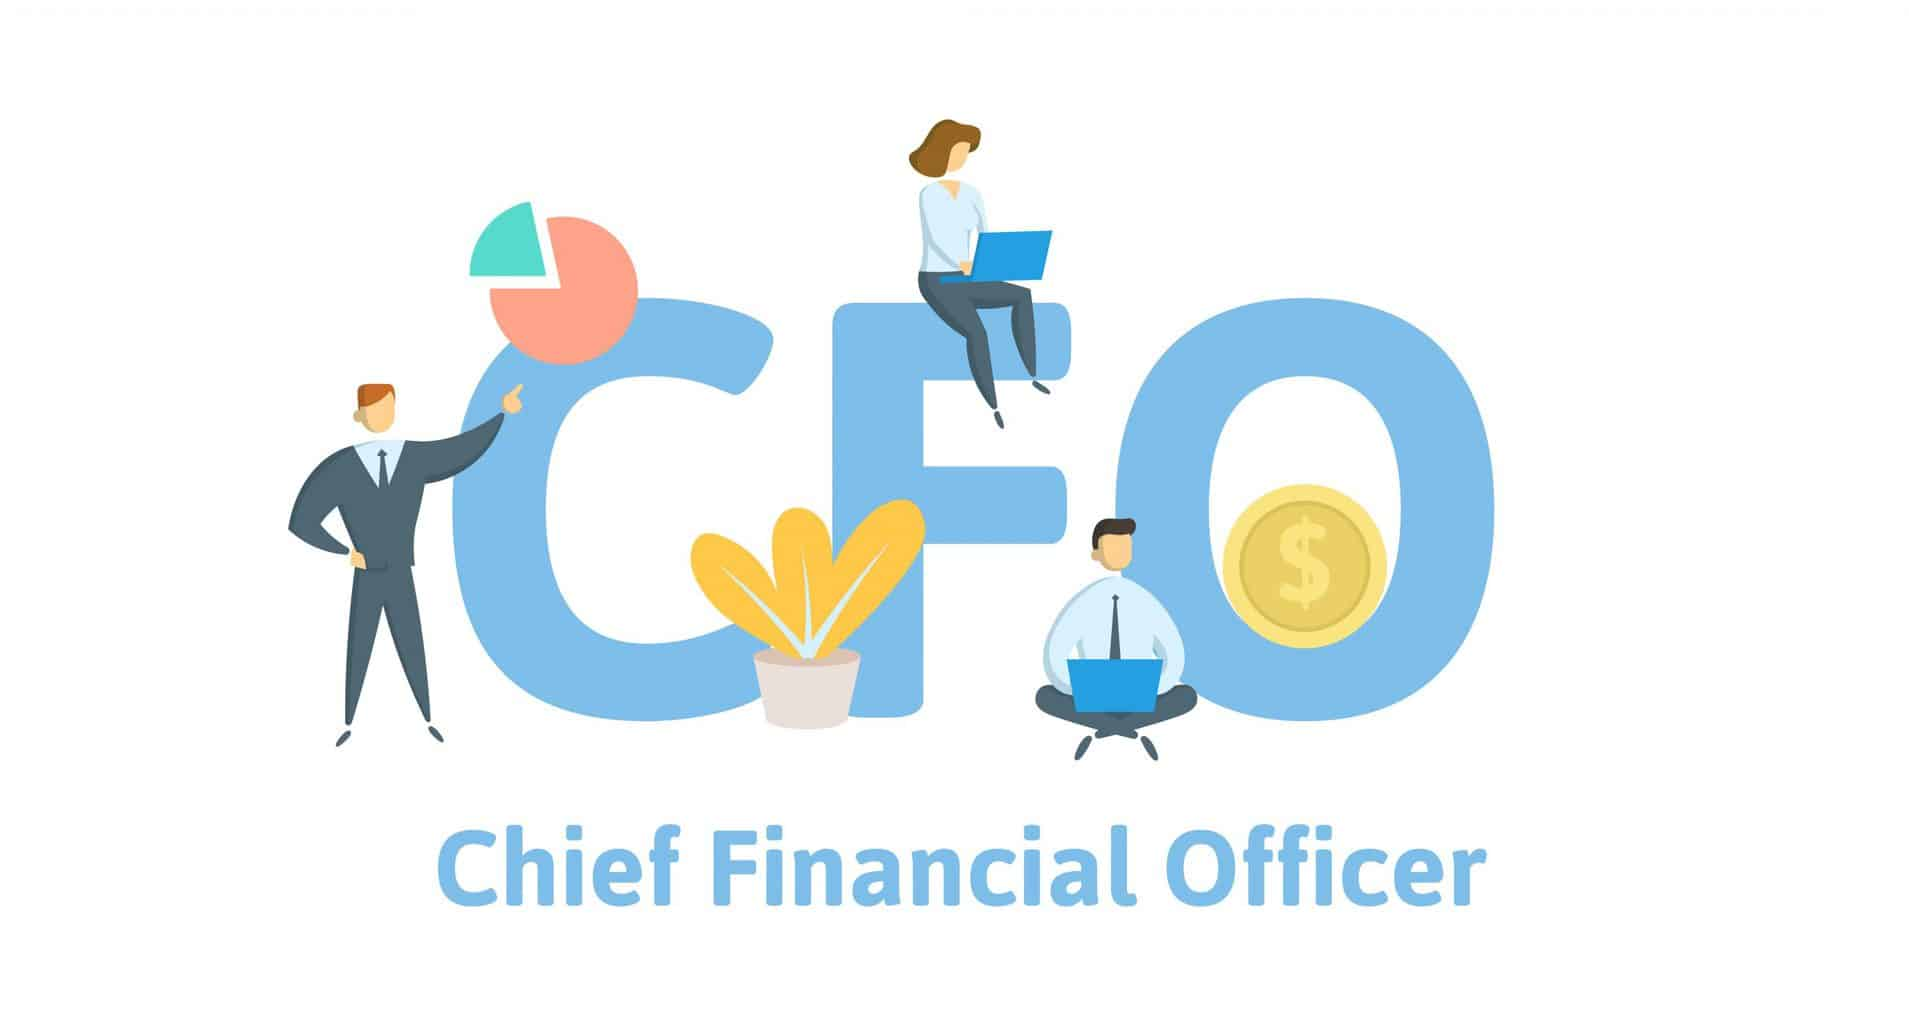 cfo chief financial officer